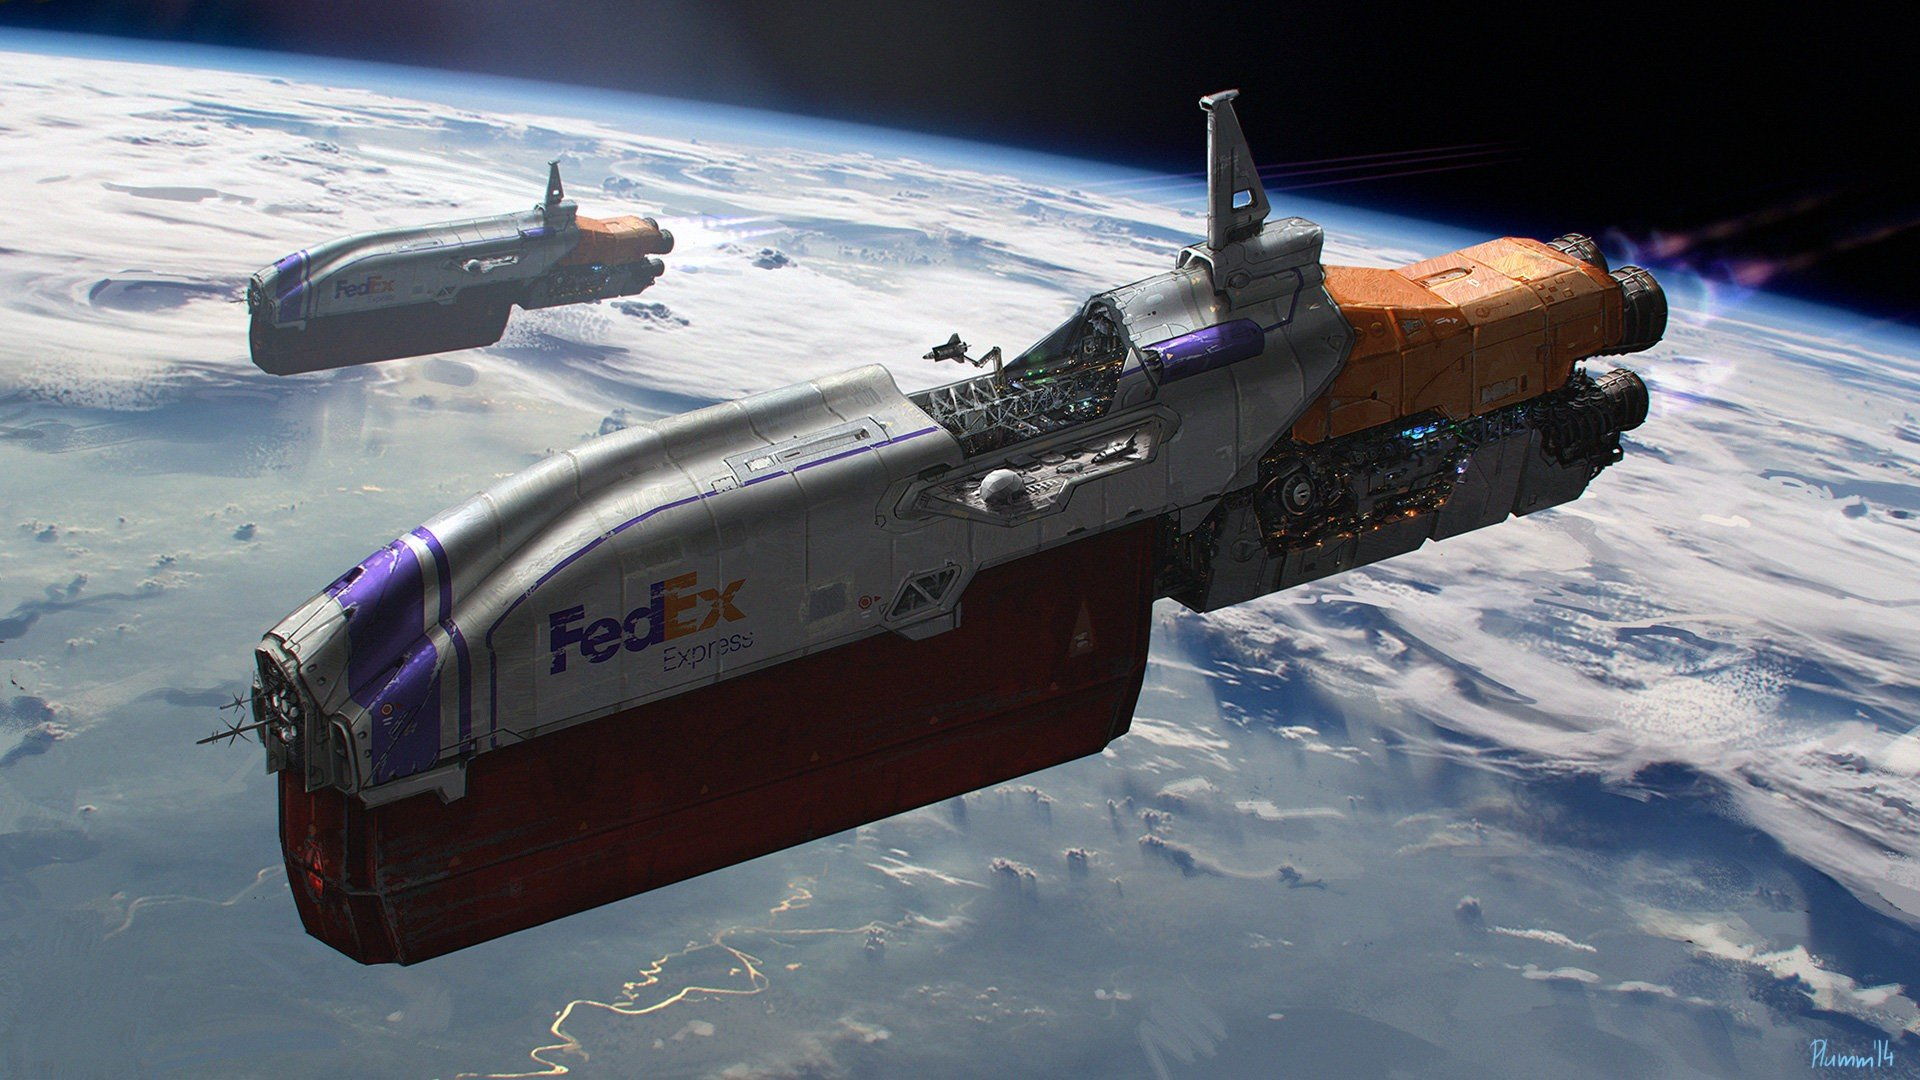 426692-spaceship-Fedex-space.jpg